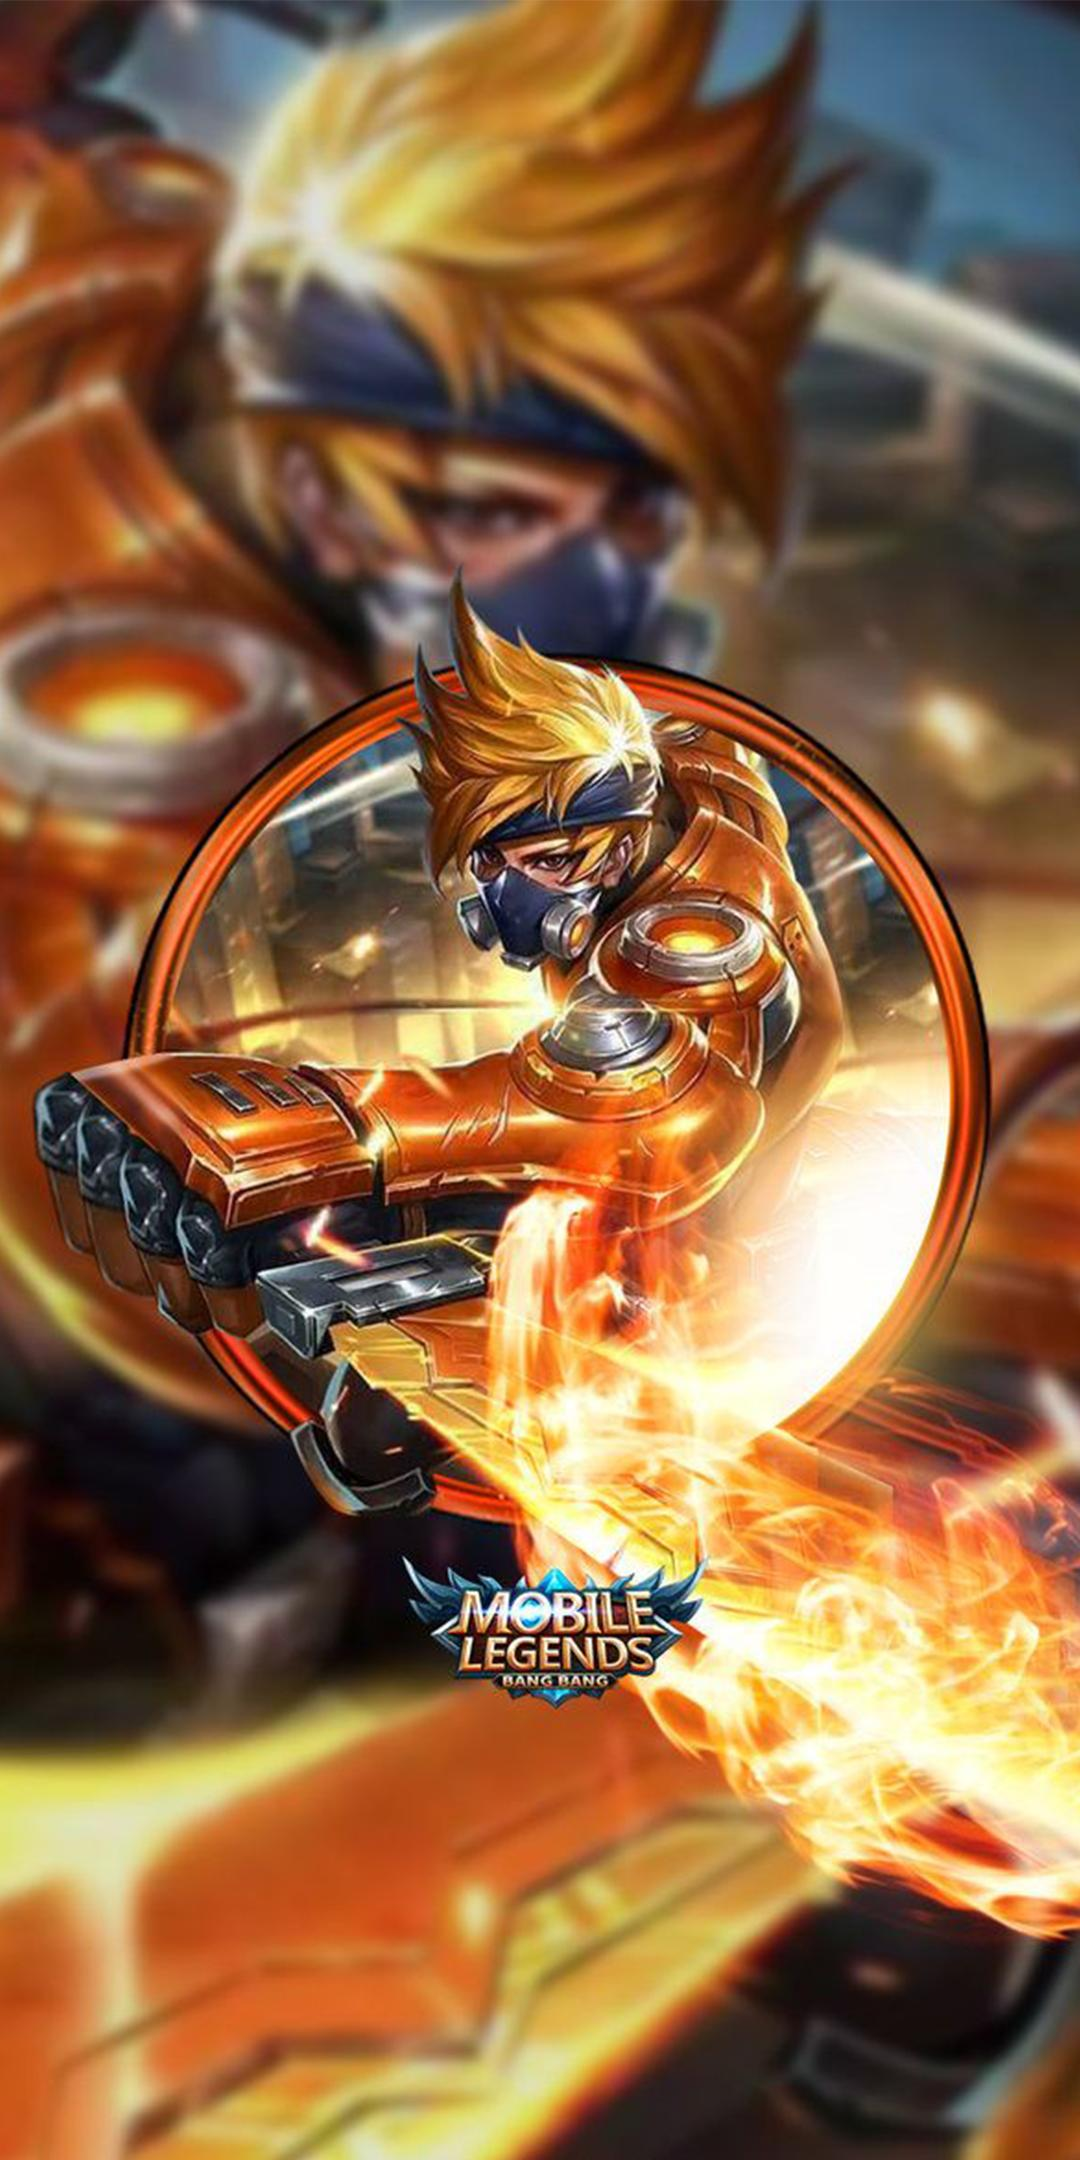 Hero Mobile Legends Wallpaper Hd For Android Apk Download